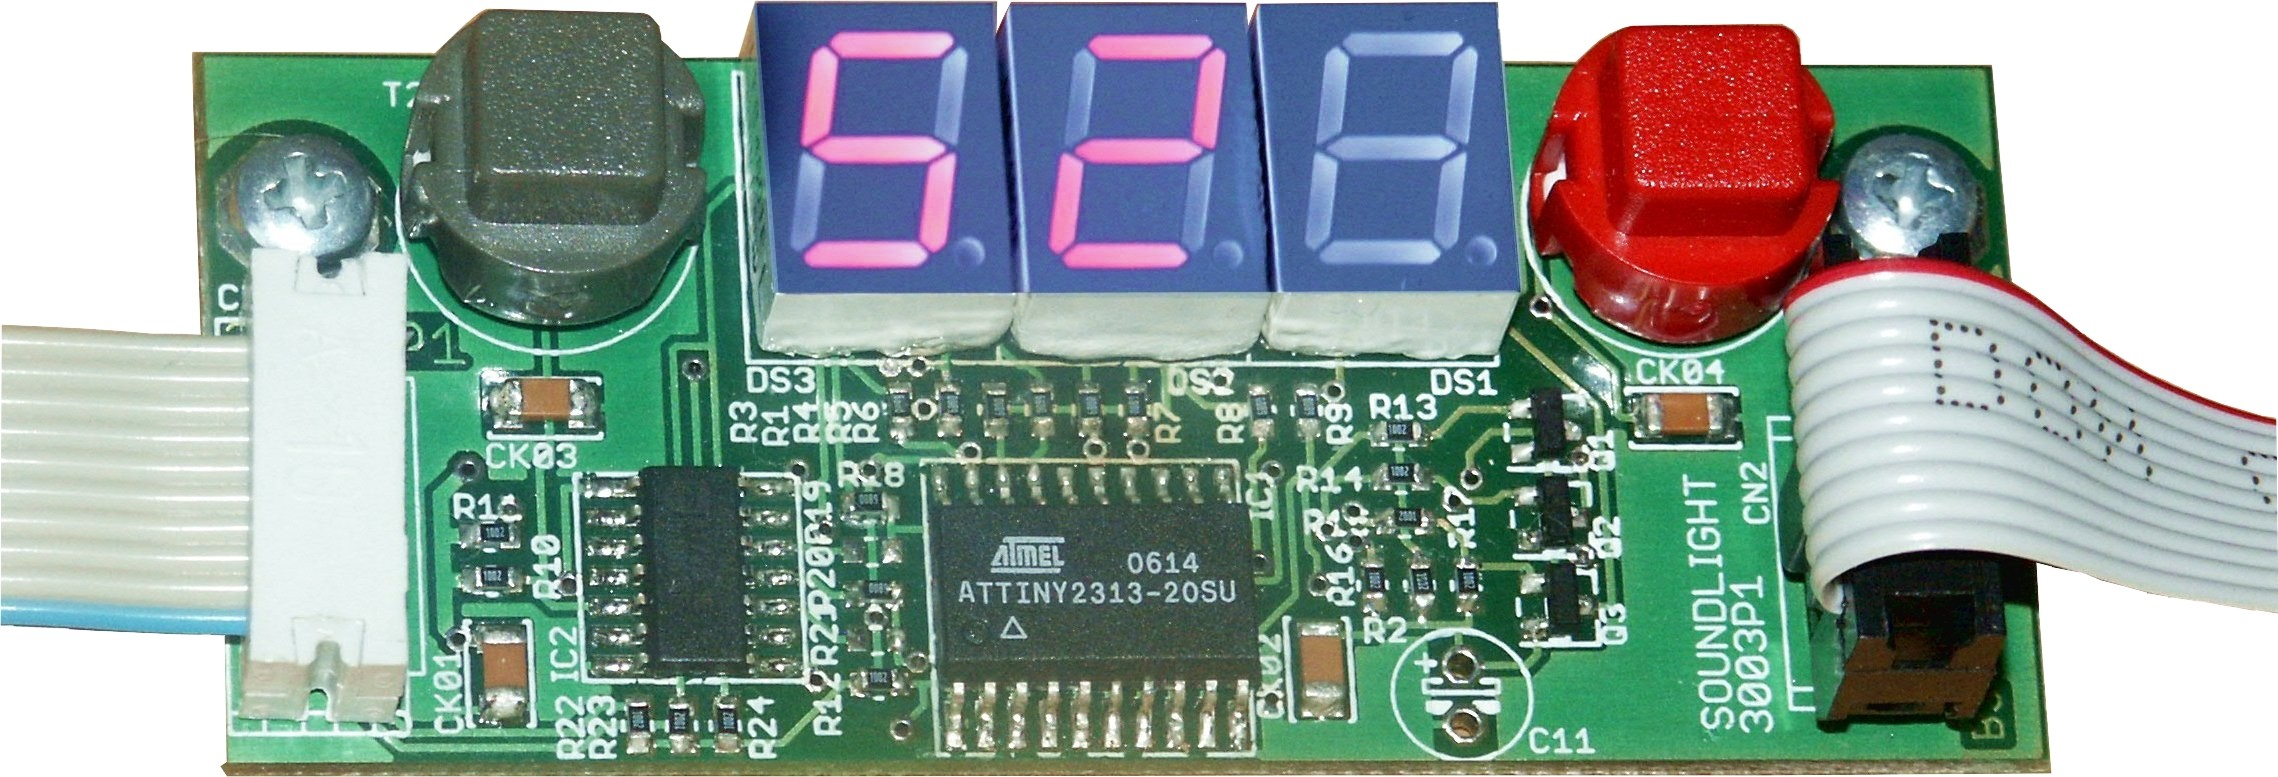 3003P | Programmeer adapter met display